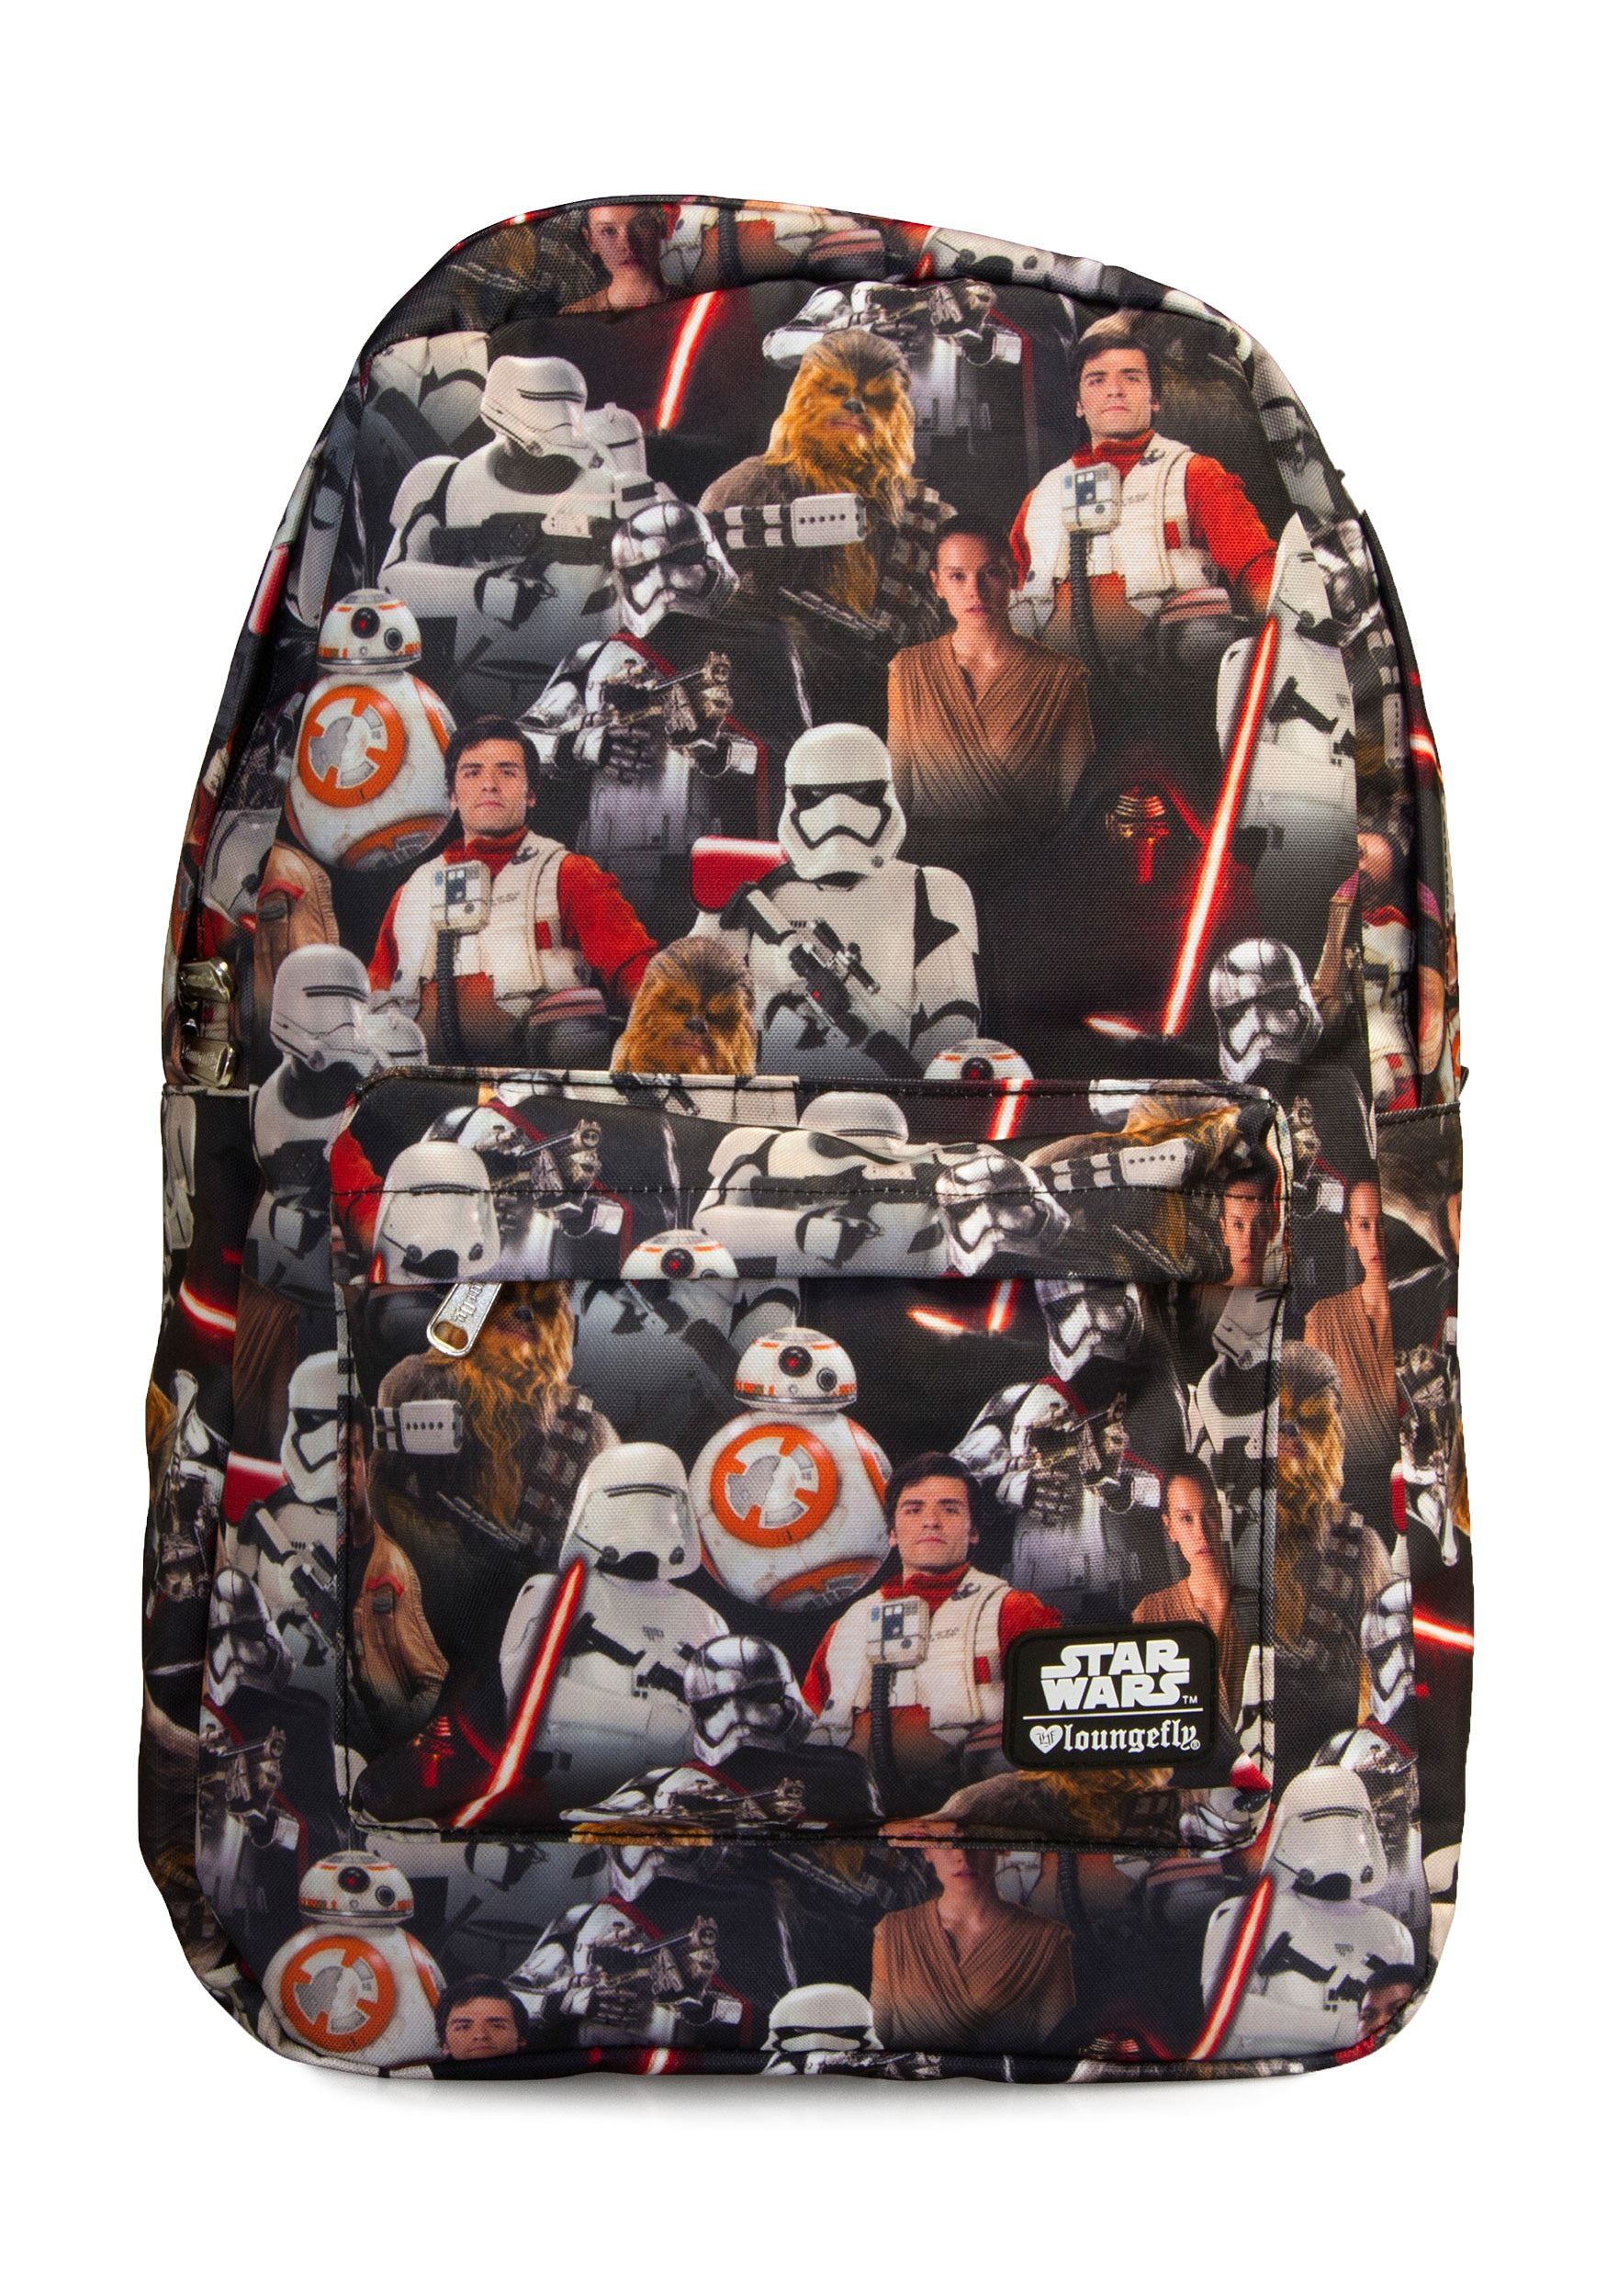 Loungefly Star Wars Episode 7 Backpack LFTFABK0003